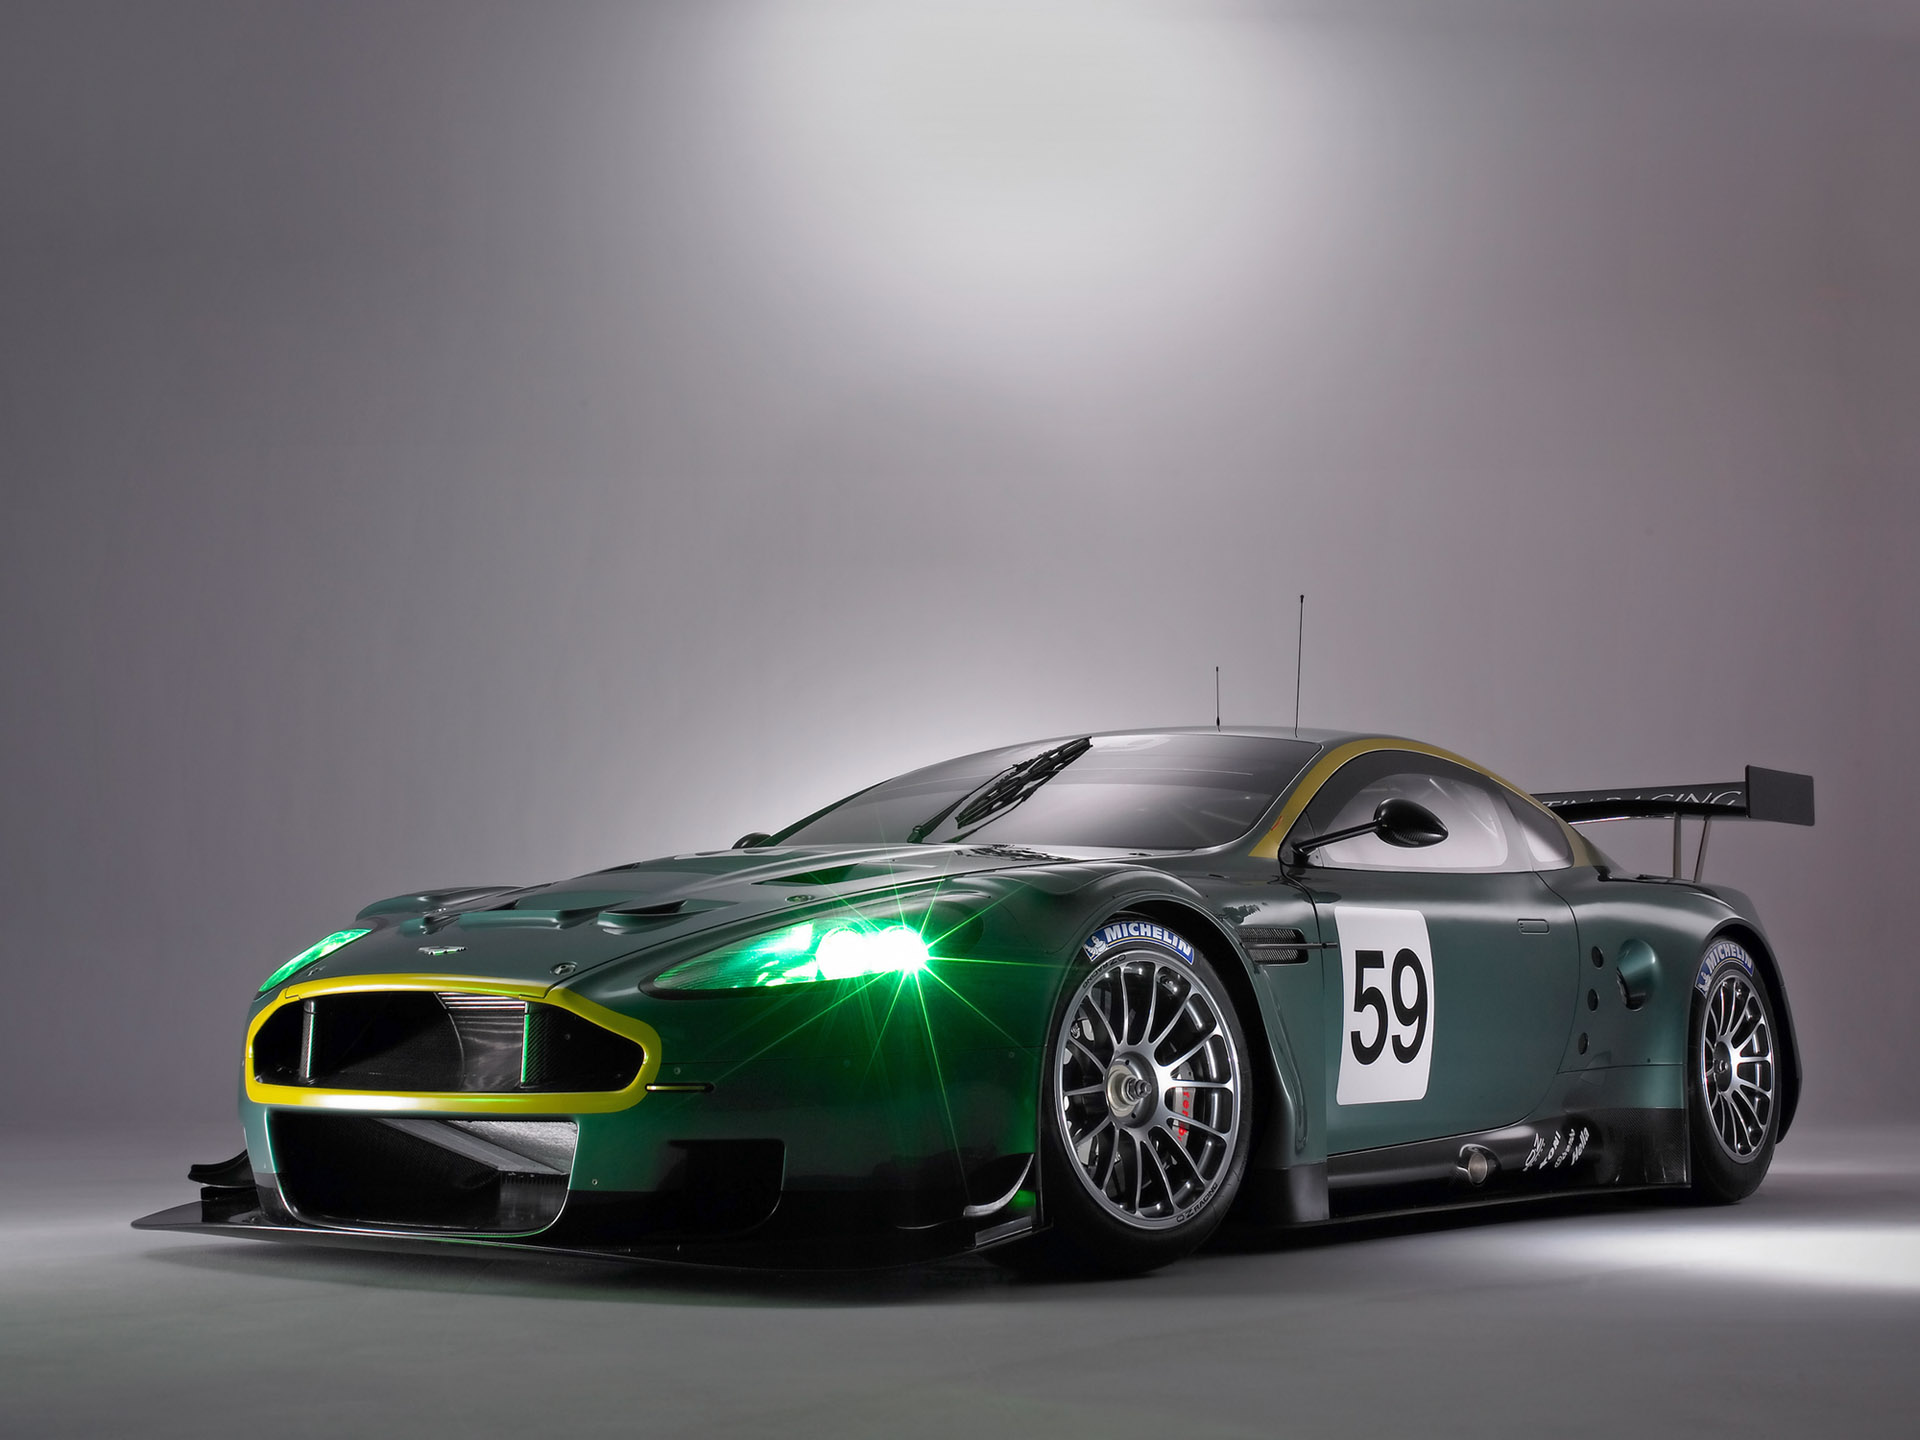 Aston Martin 2013 DBR9 Wallpaper-1080p